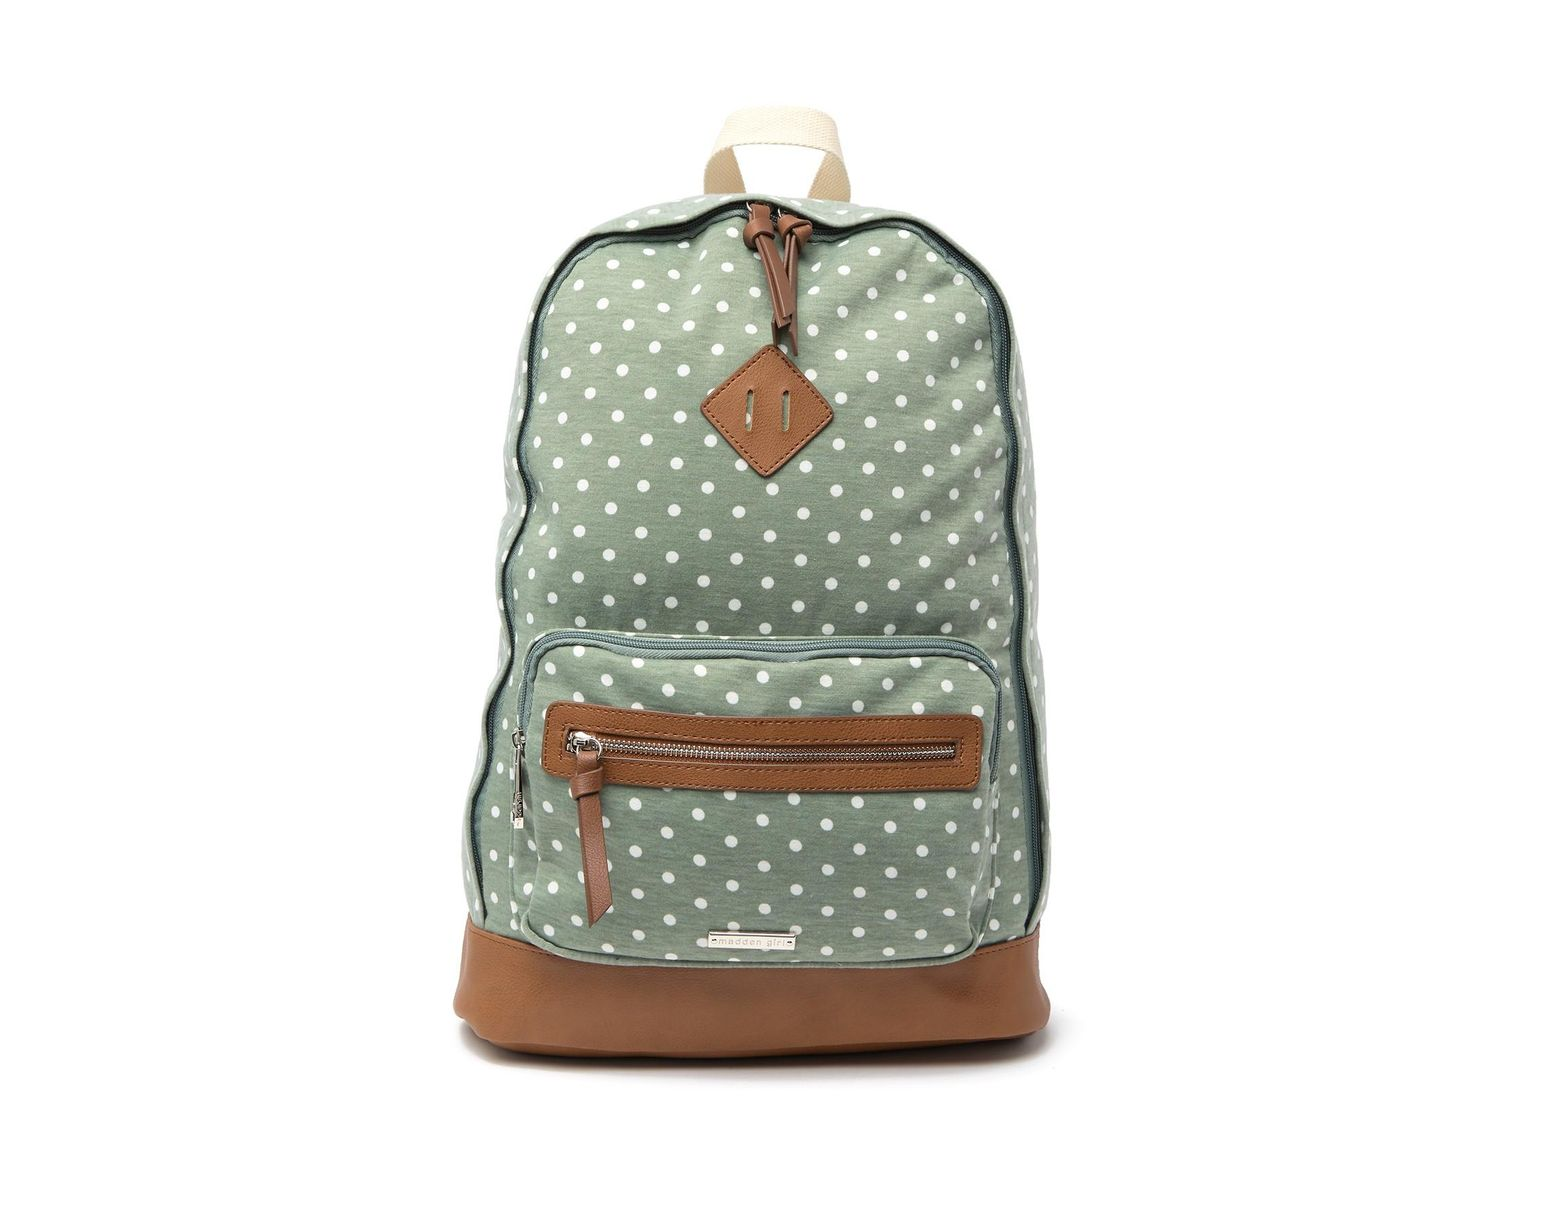 f91269f31 Madden Girl Polka-dot School Backpack in Green - Lyst